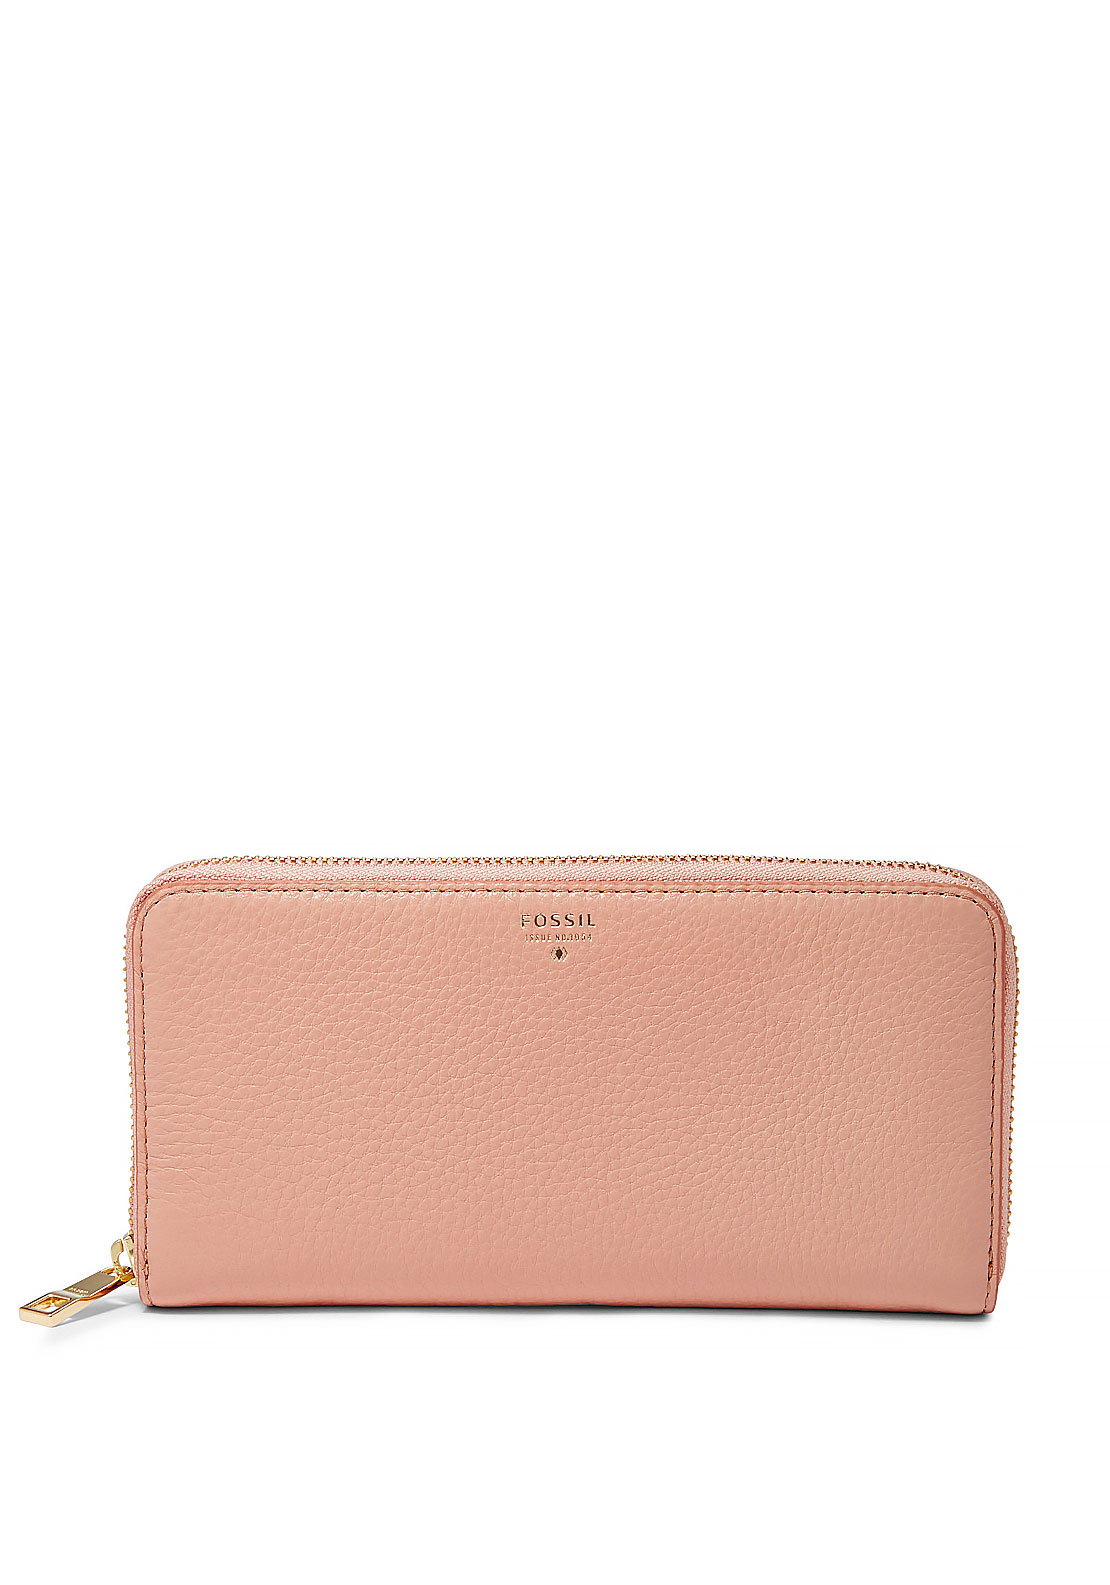 Fossil Sydney Large Leather Zipped Wallet, Shell